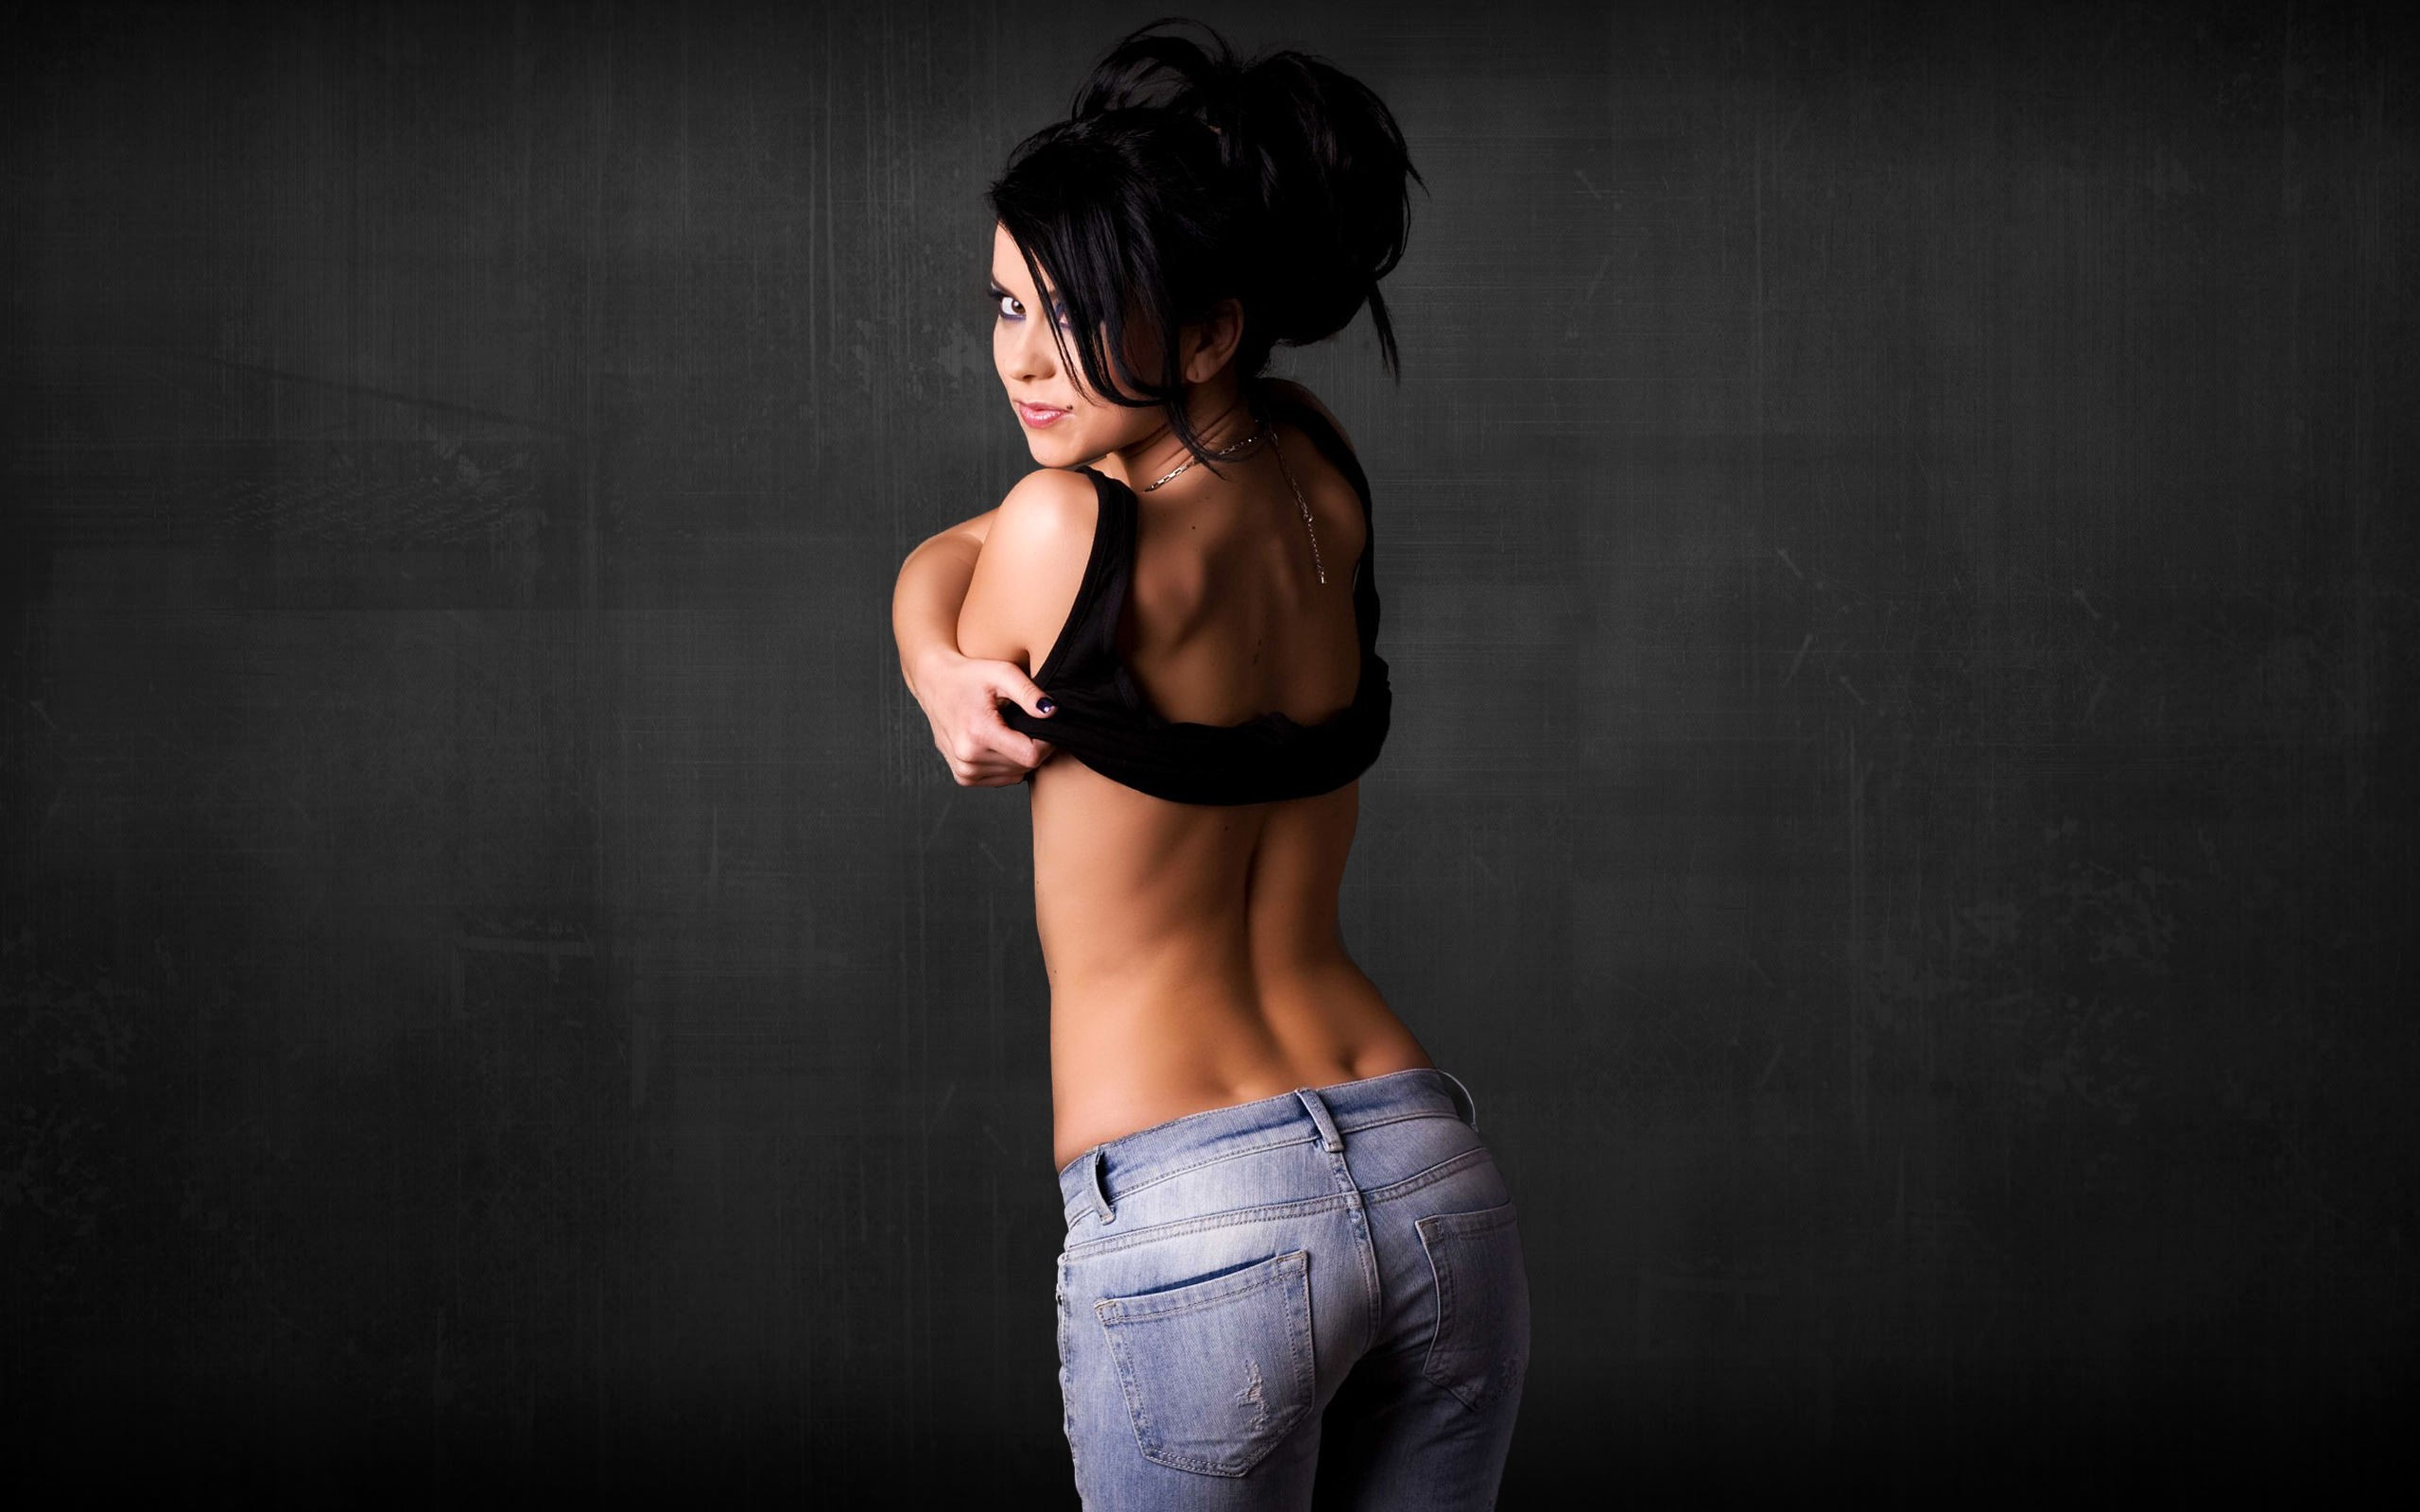 brunettes woman jeans ass HD Wallpaper